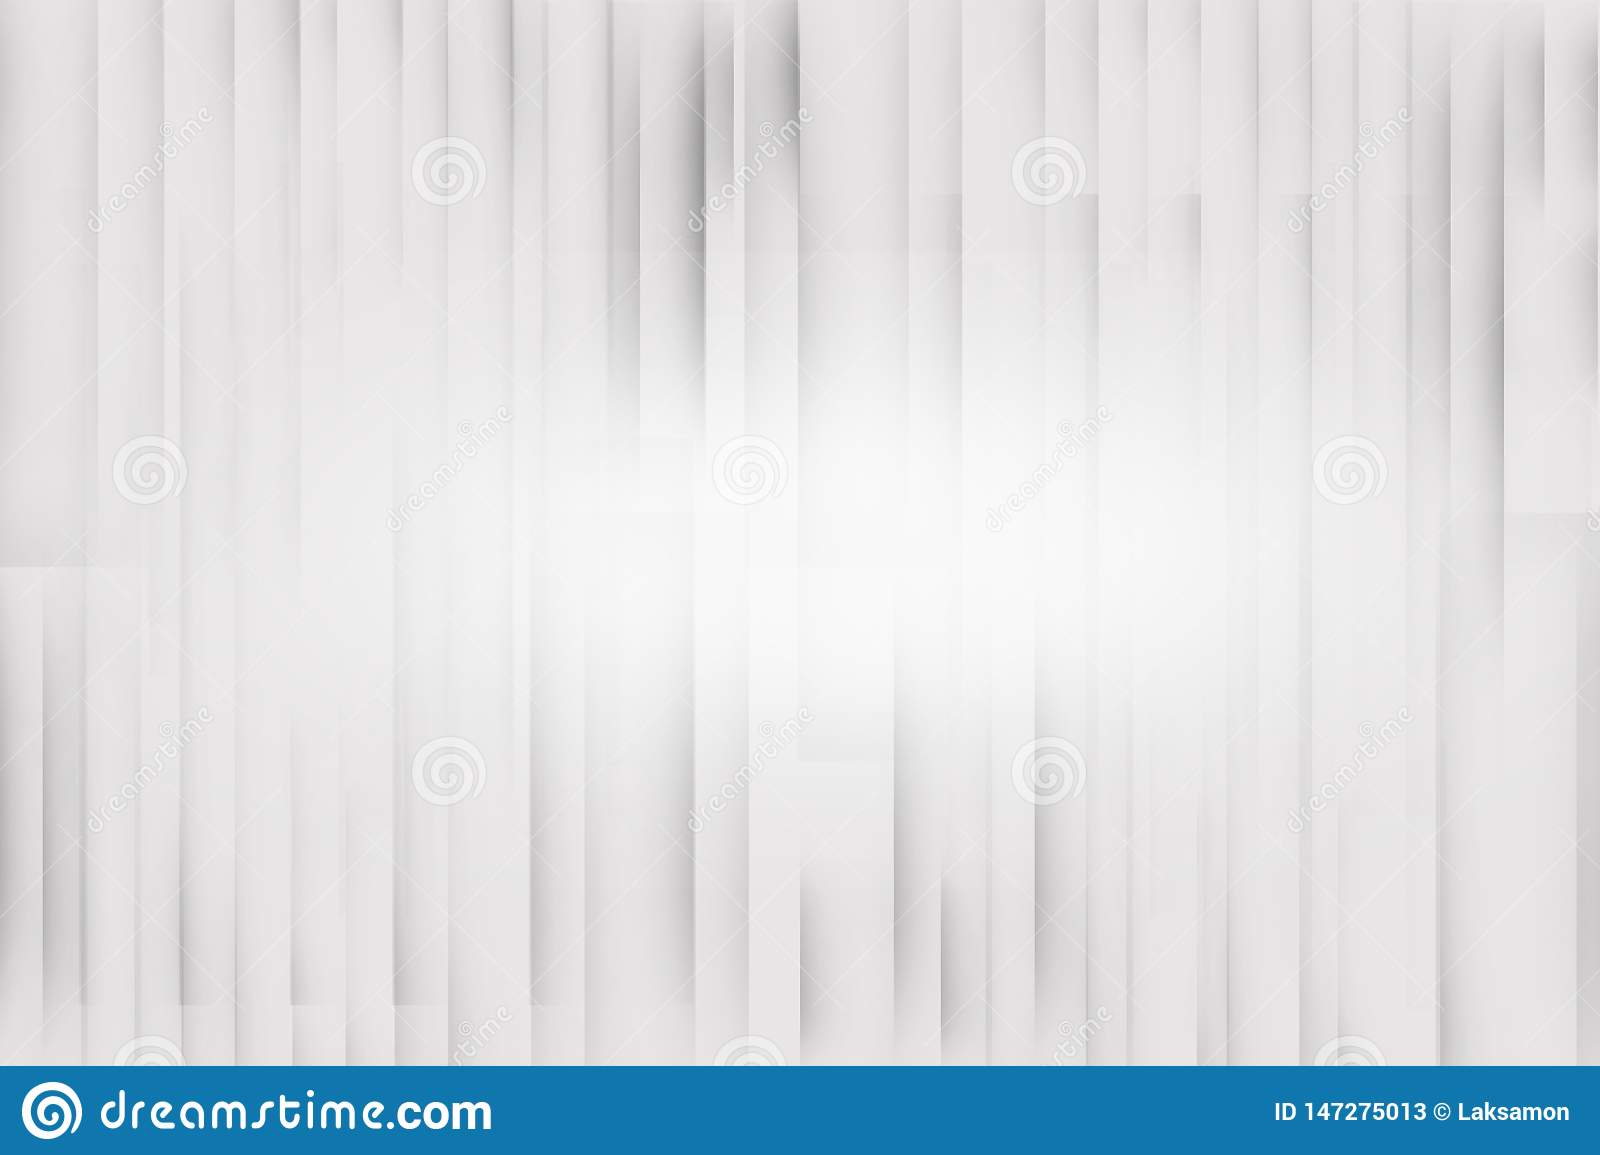 White and gray Silver curved square line abstract background,business card background